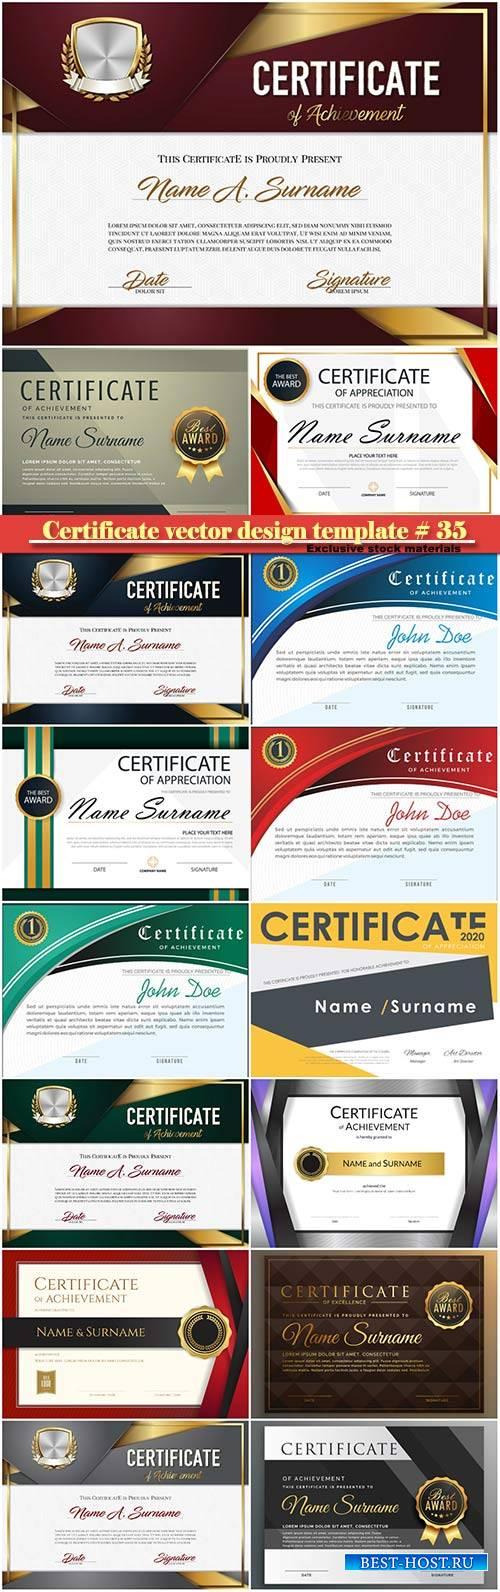 Certificate and vector diploma design template # 35